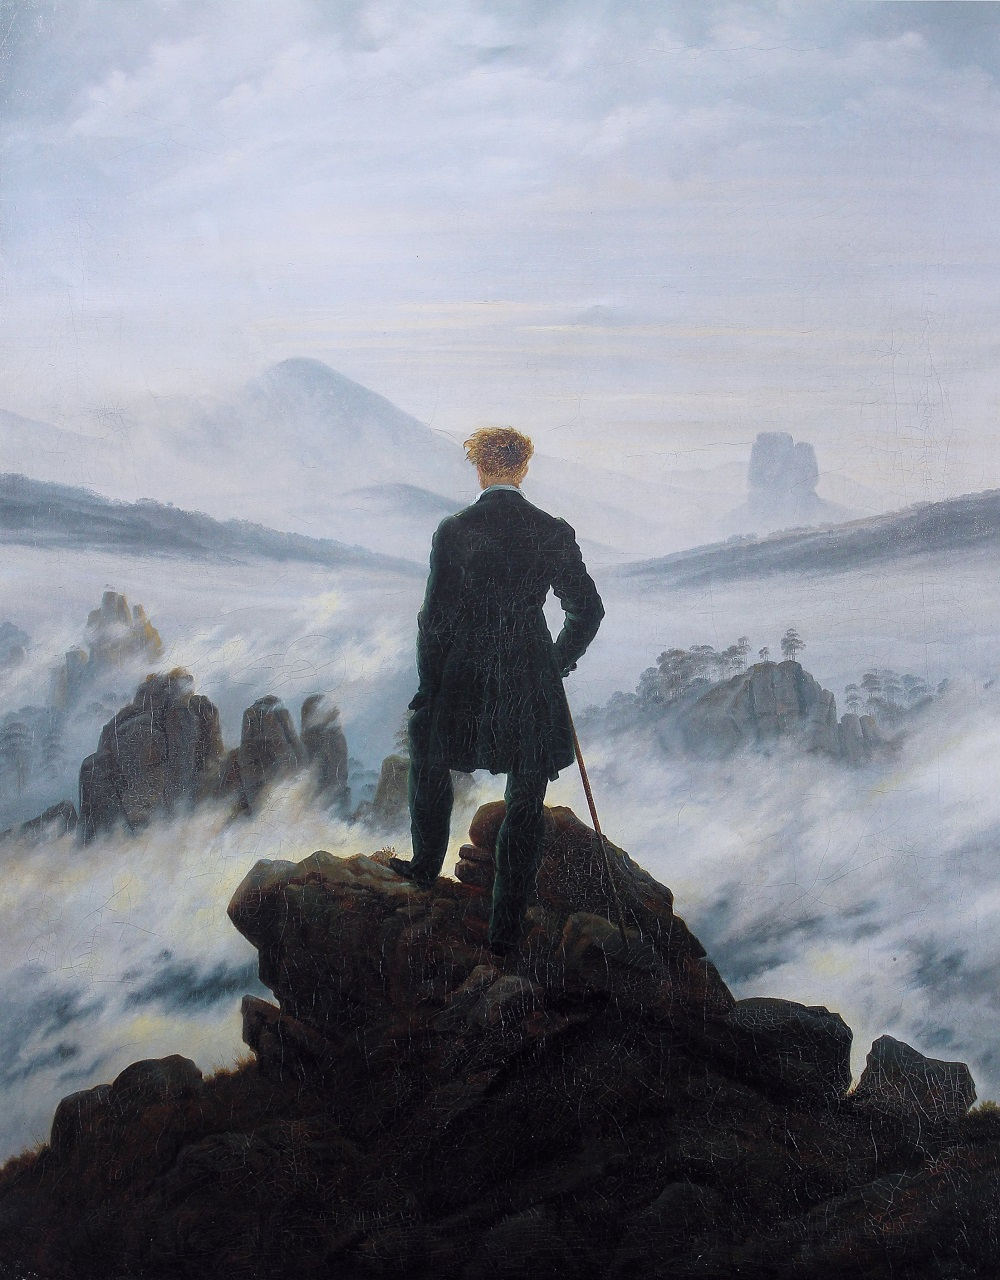 Man at the top of a mountain looking out